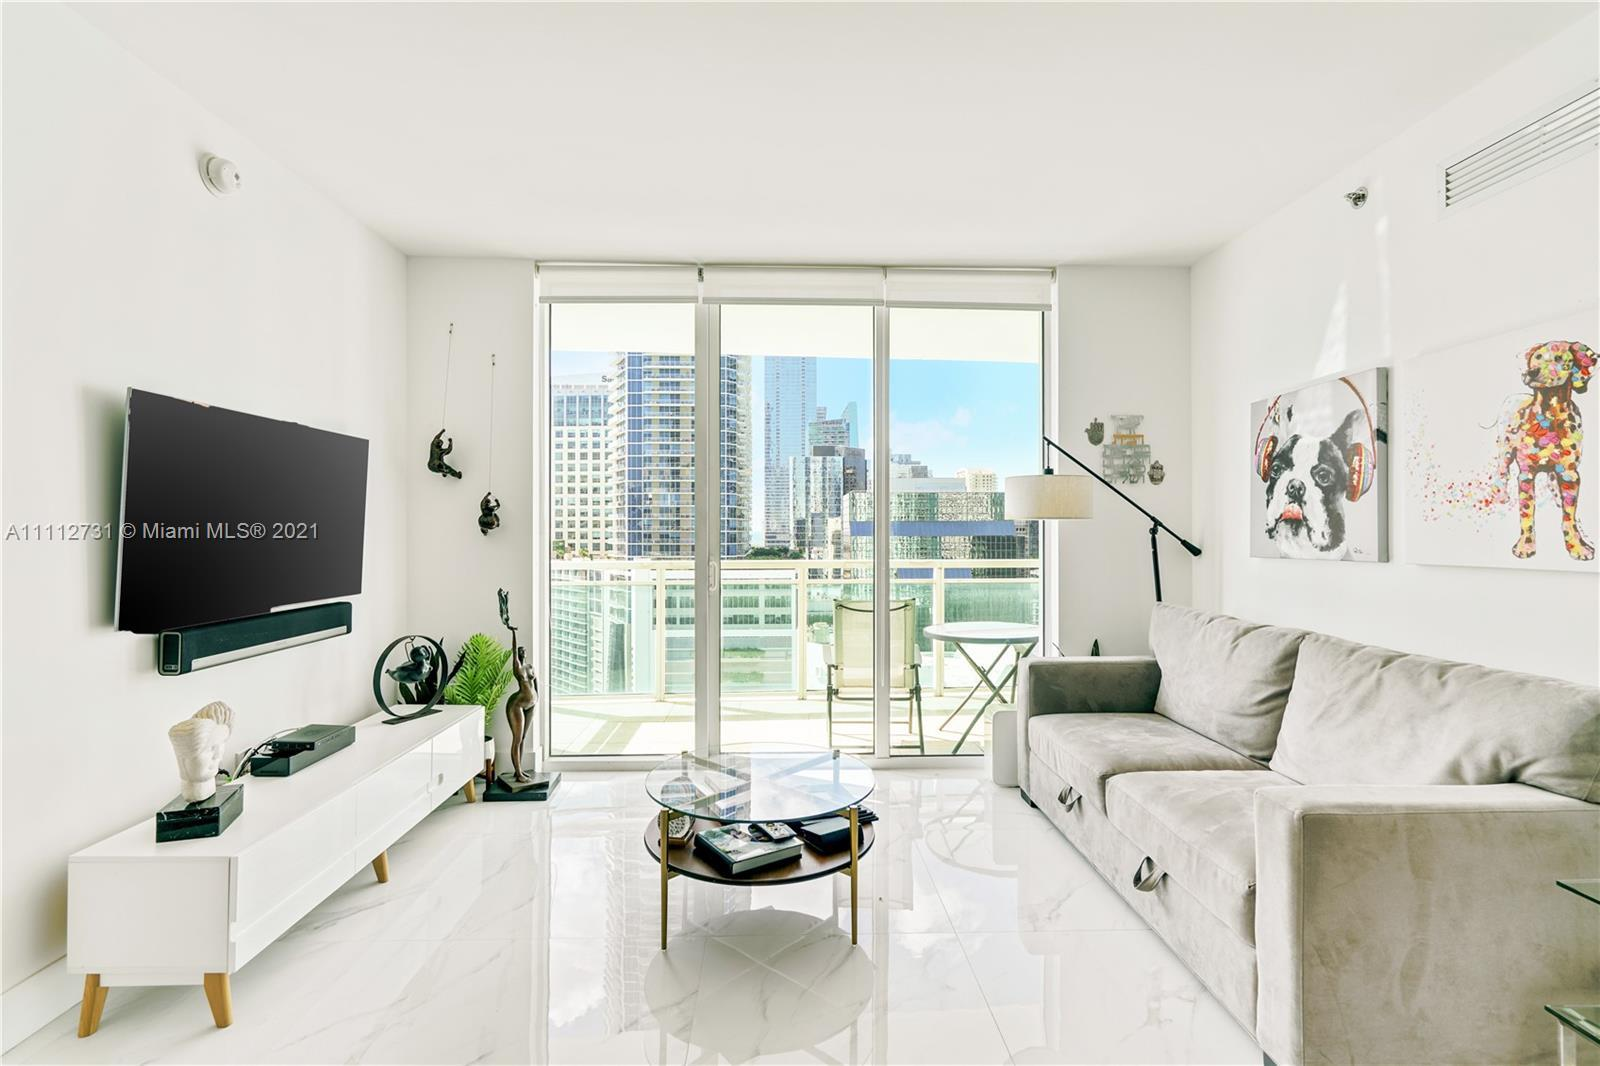 Immaculate 2bed/2bath in the popular 07-line at The Plaza with stunning water views of the Bay, skyl